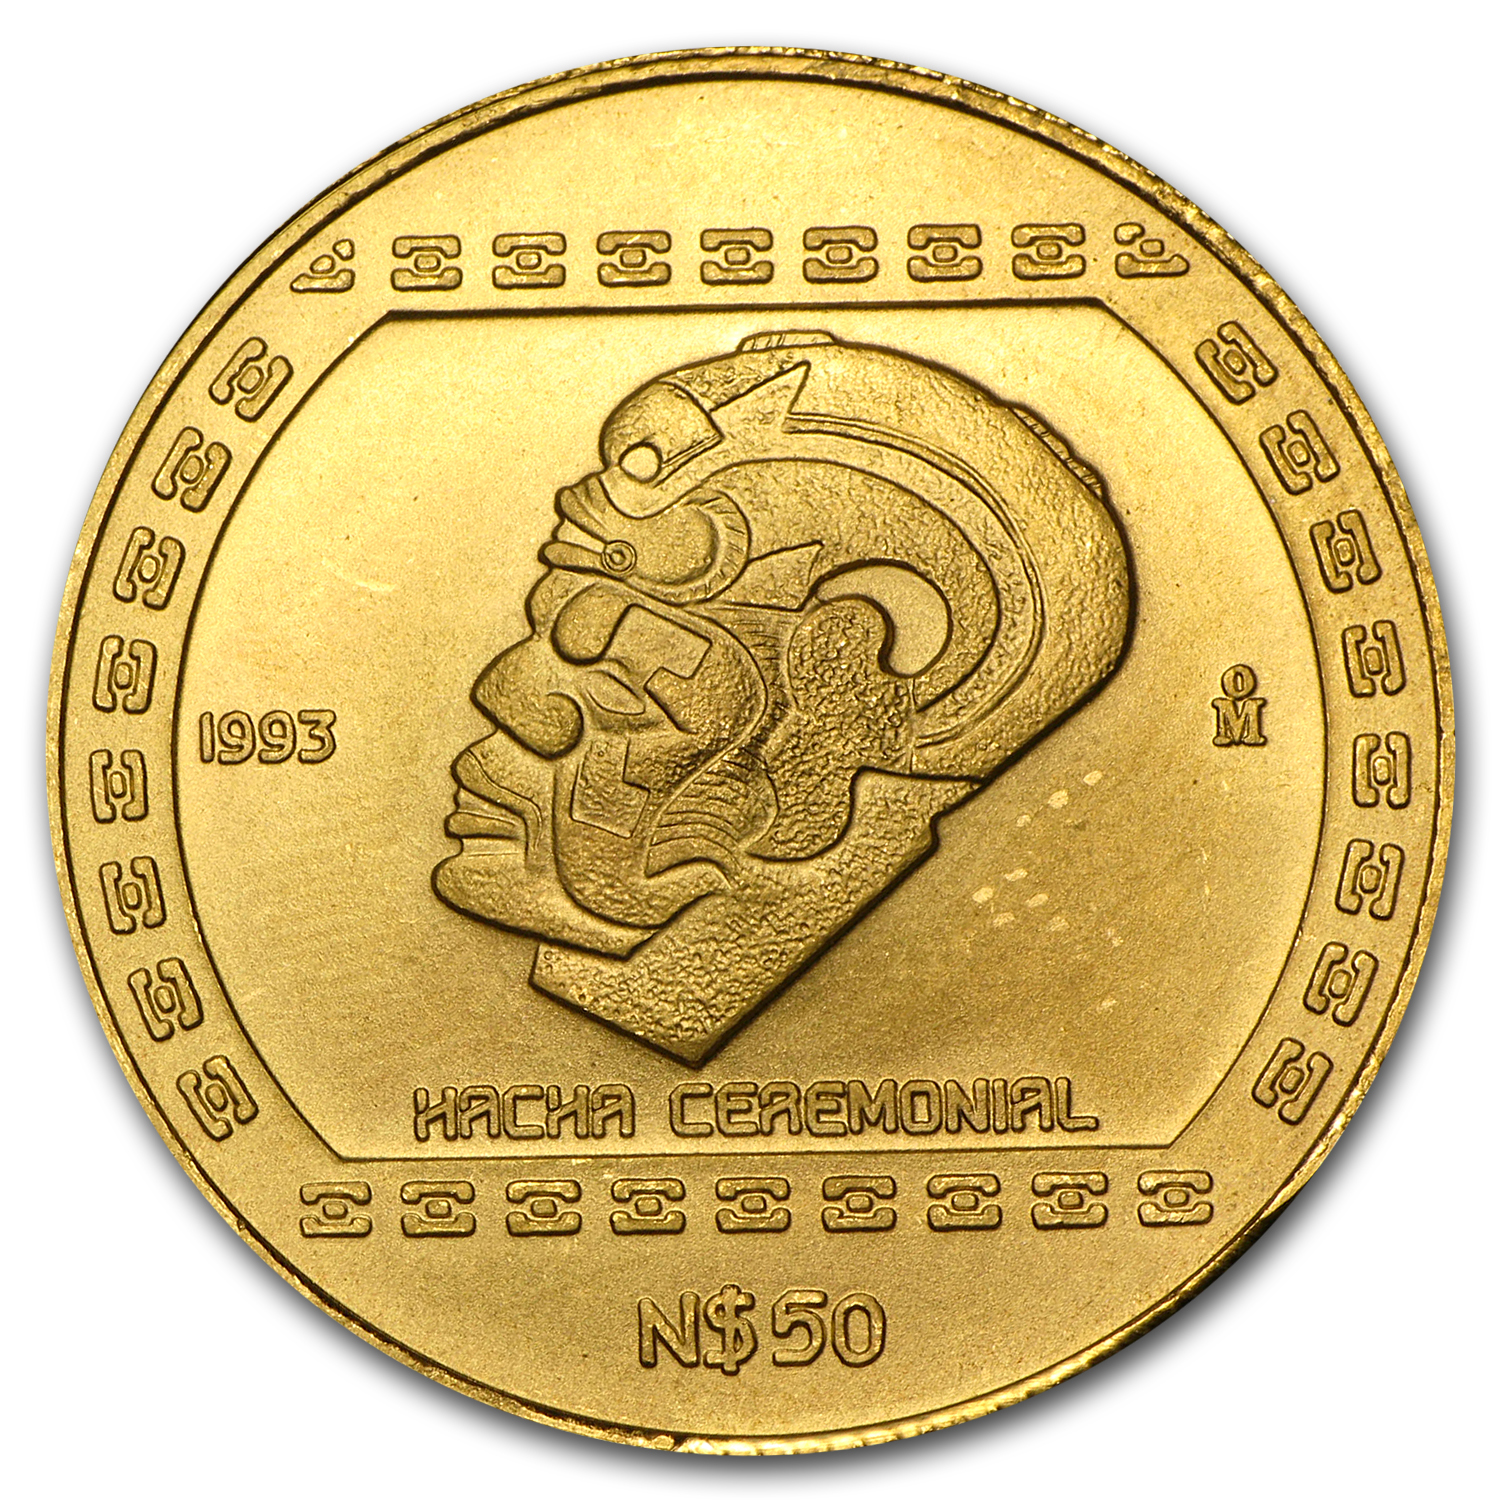 1993 Mexico 50 Pesos Gold Hacha Ceremonial BU